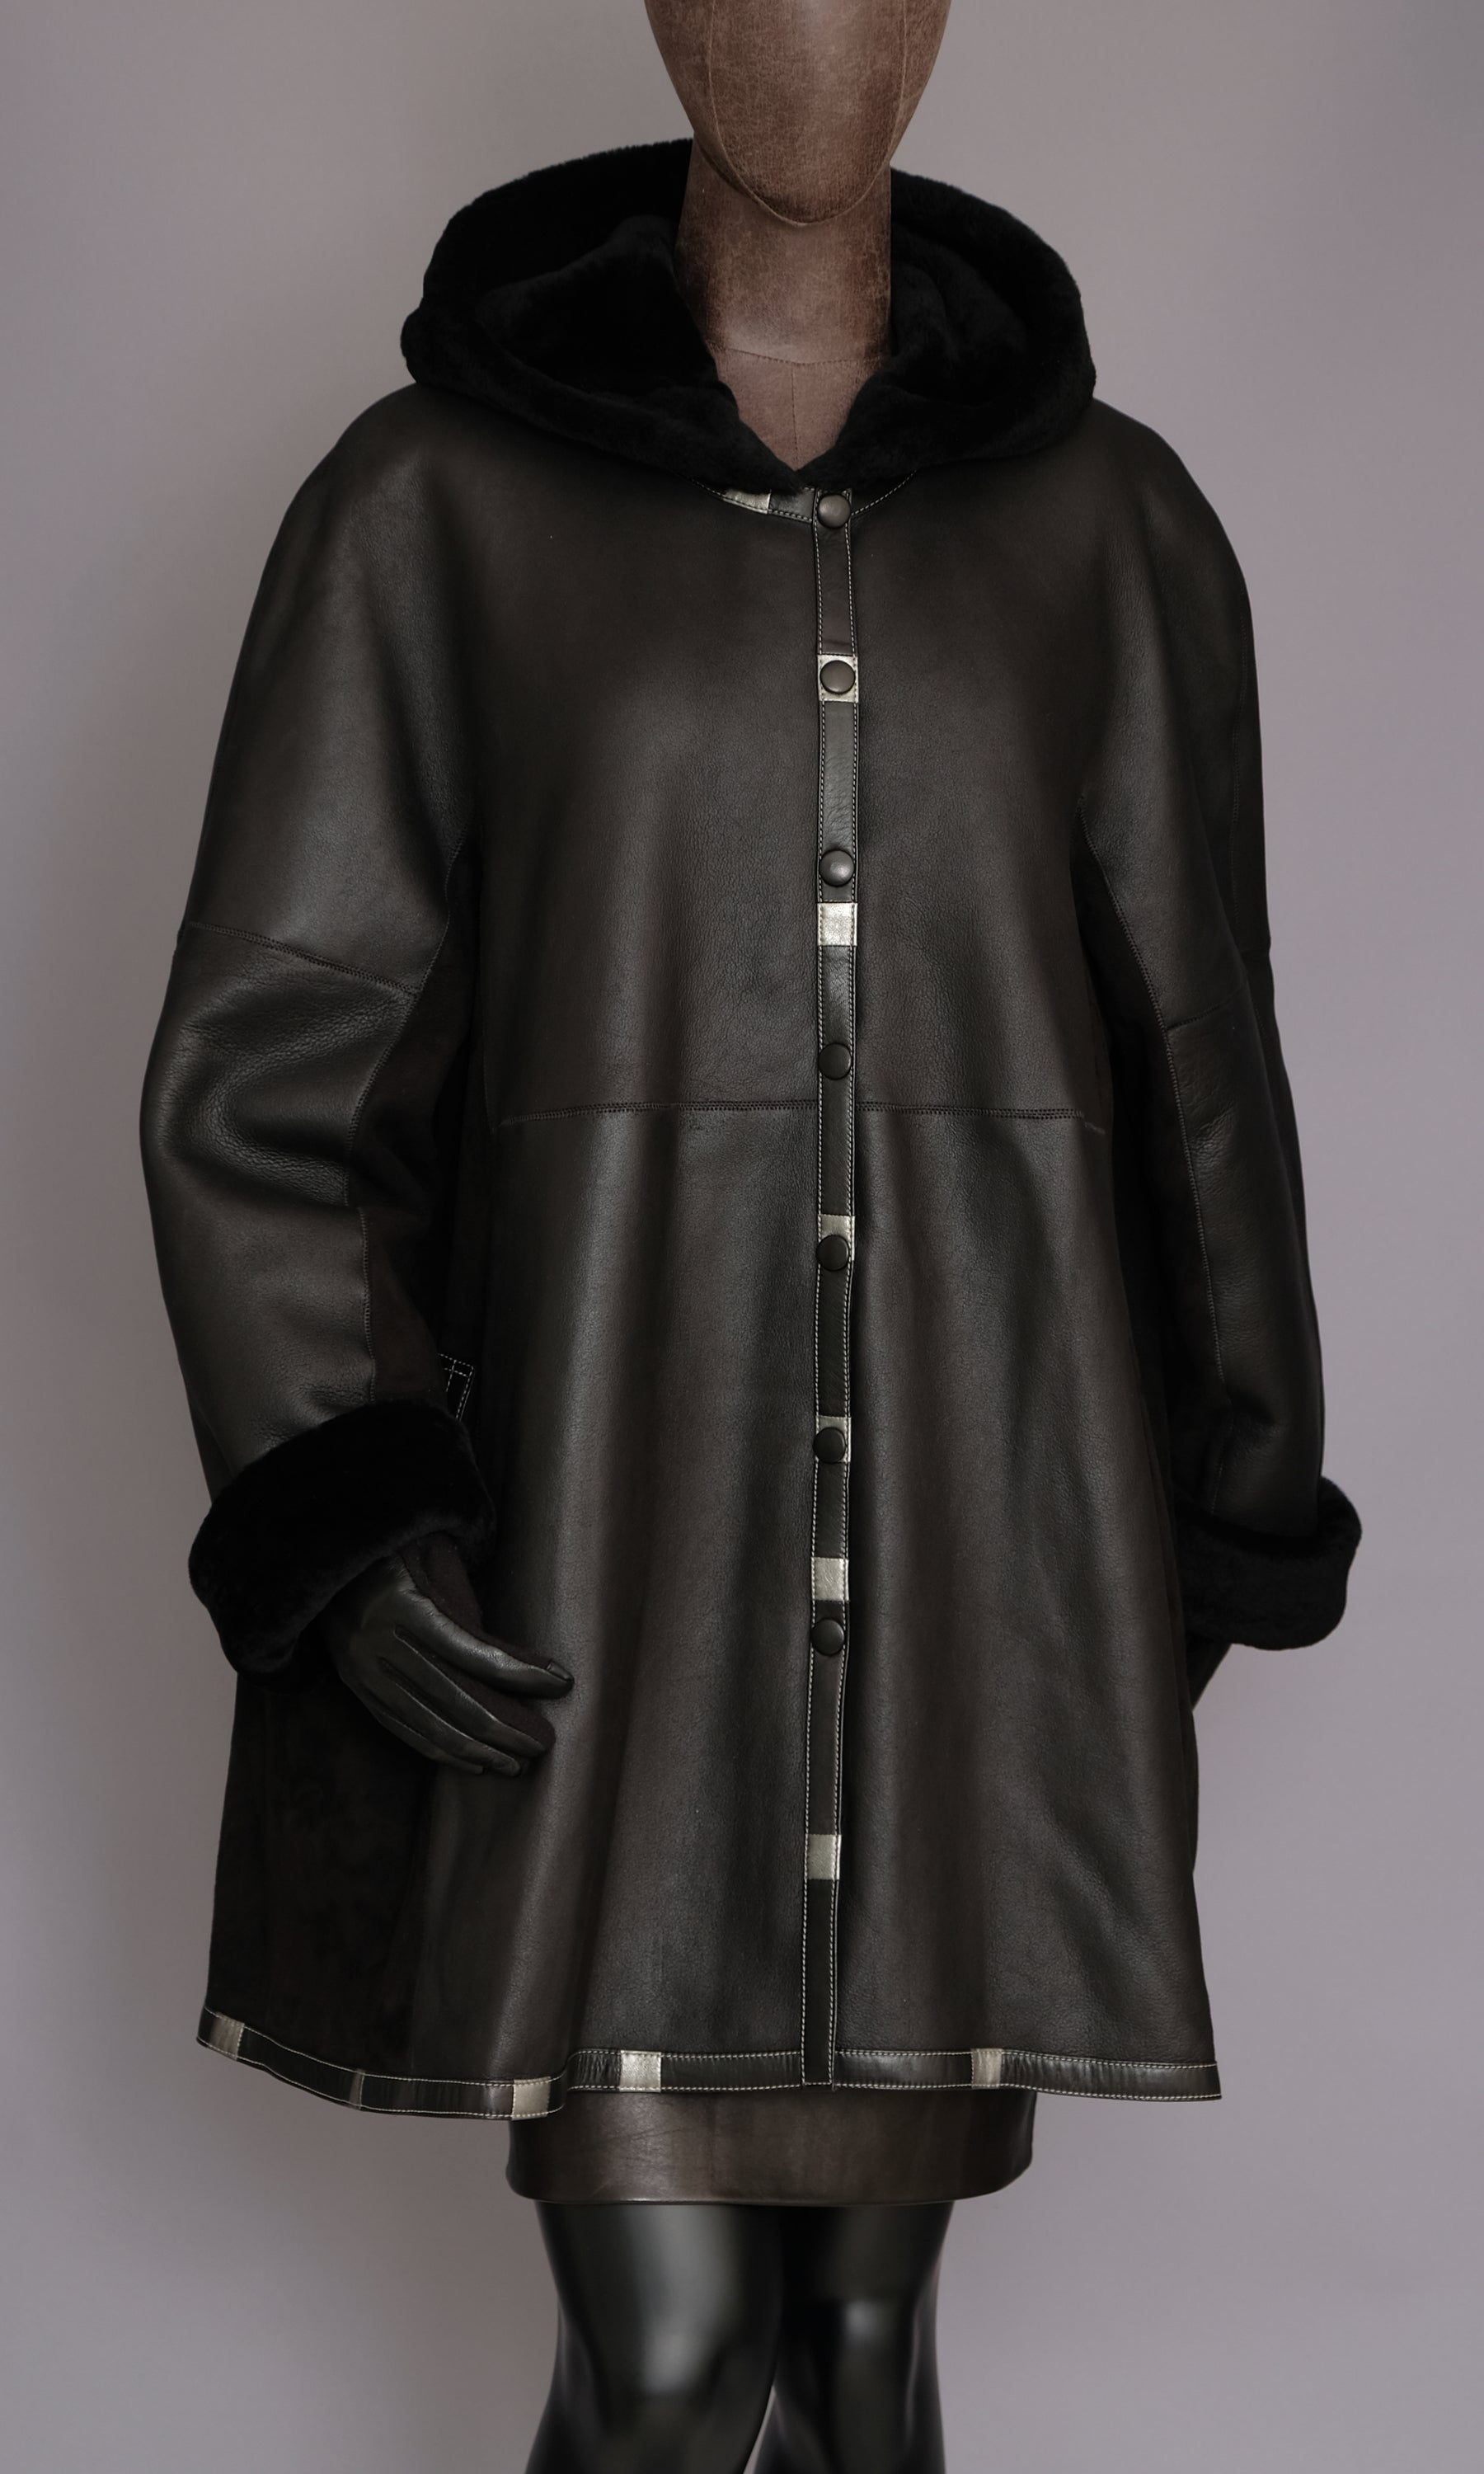 Black Leather and suede mix shearling swing coat with hood size xxl